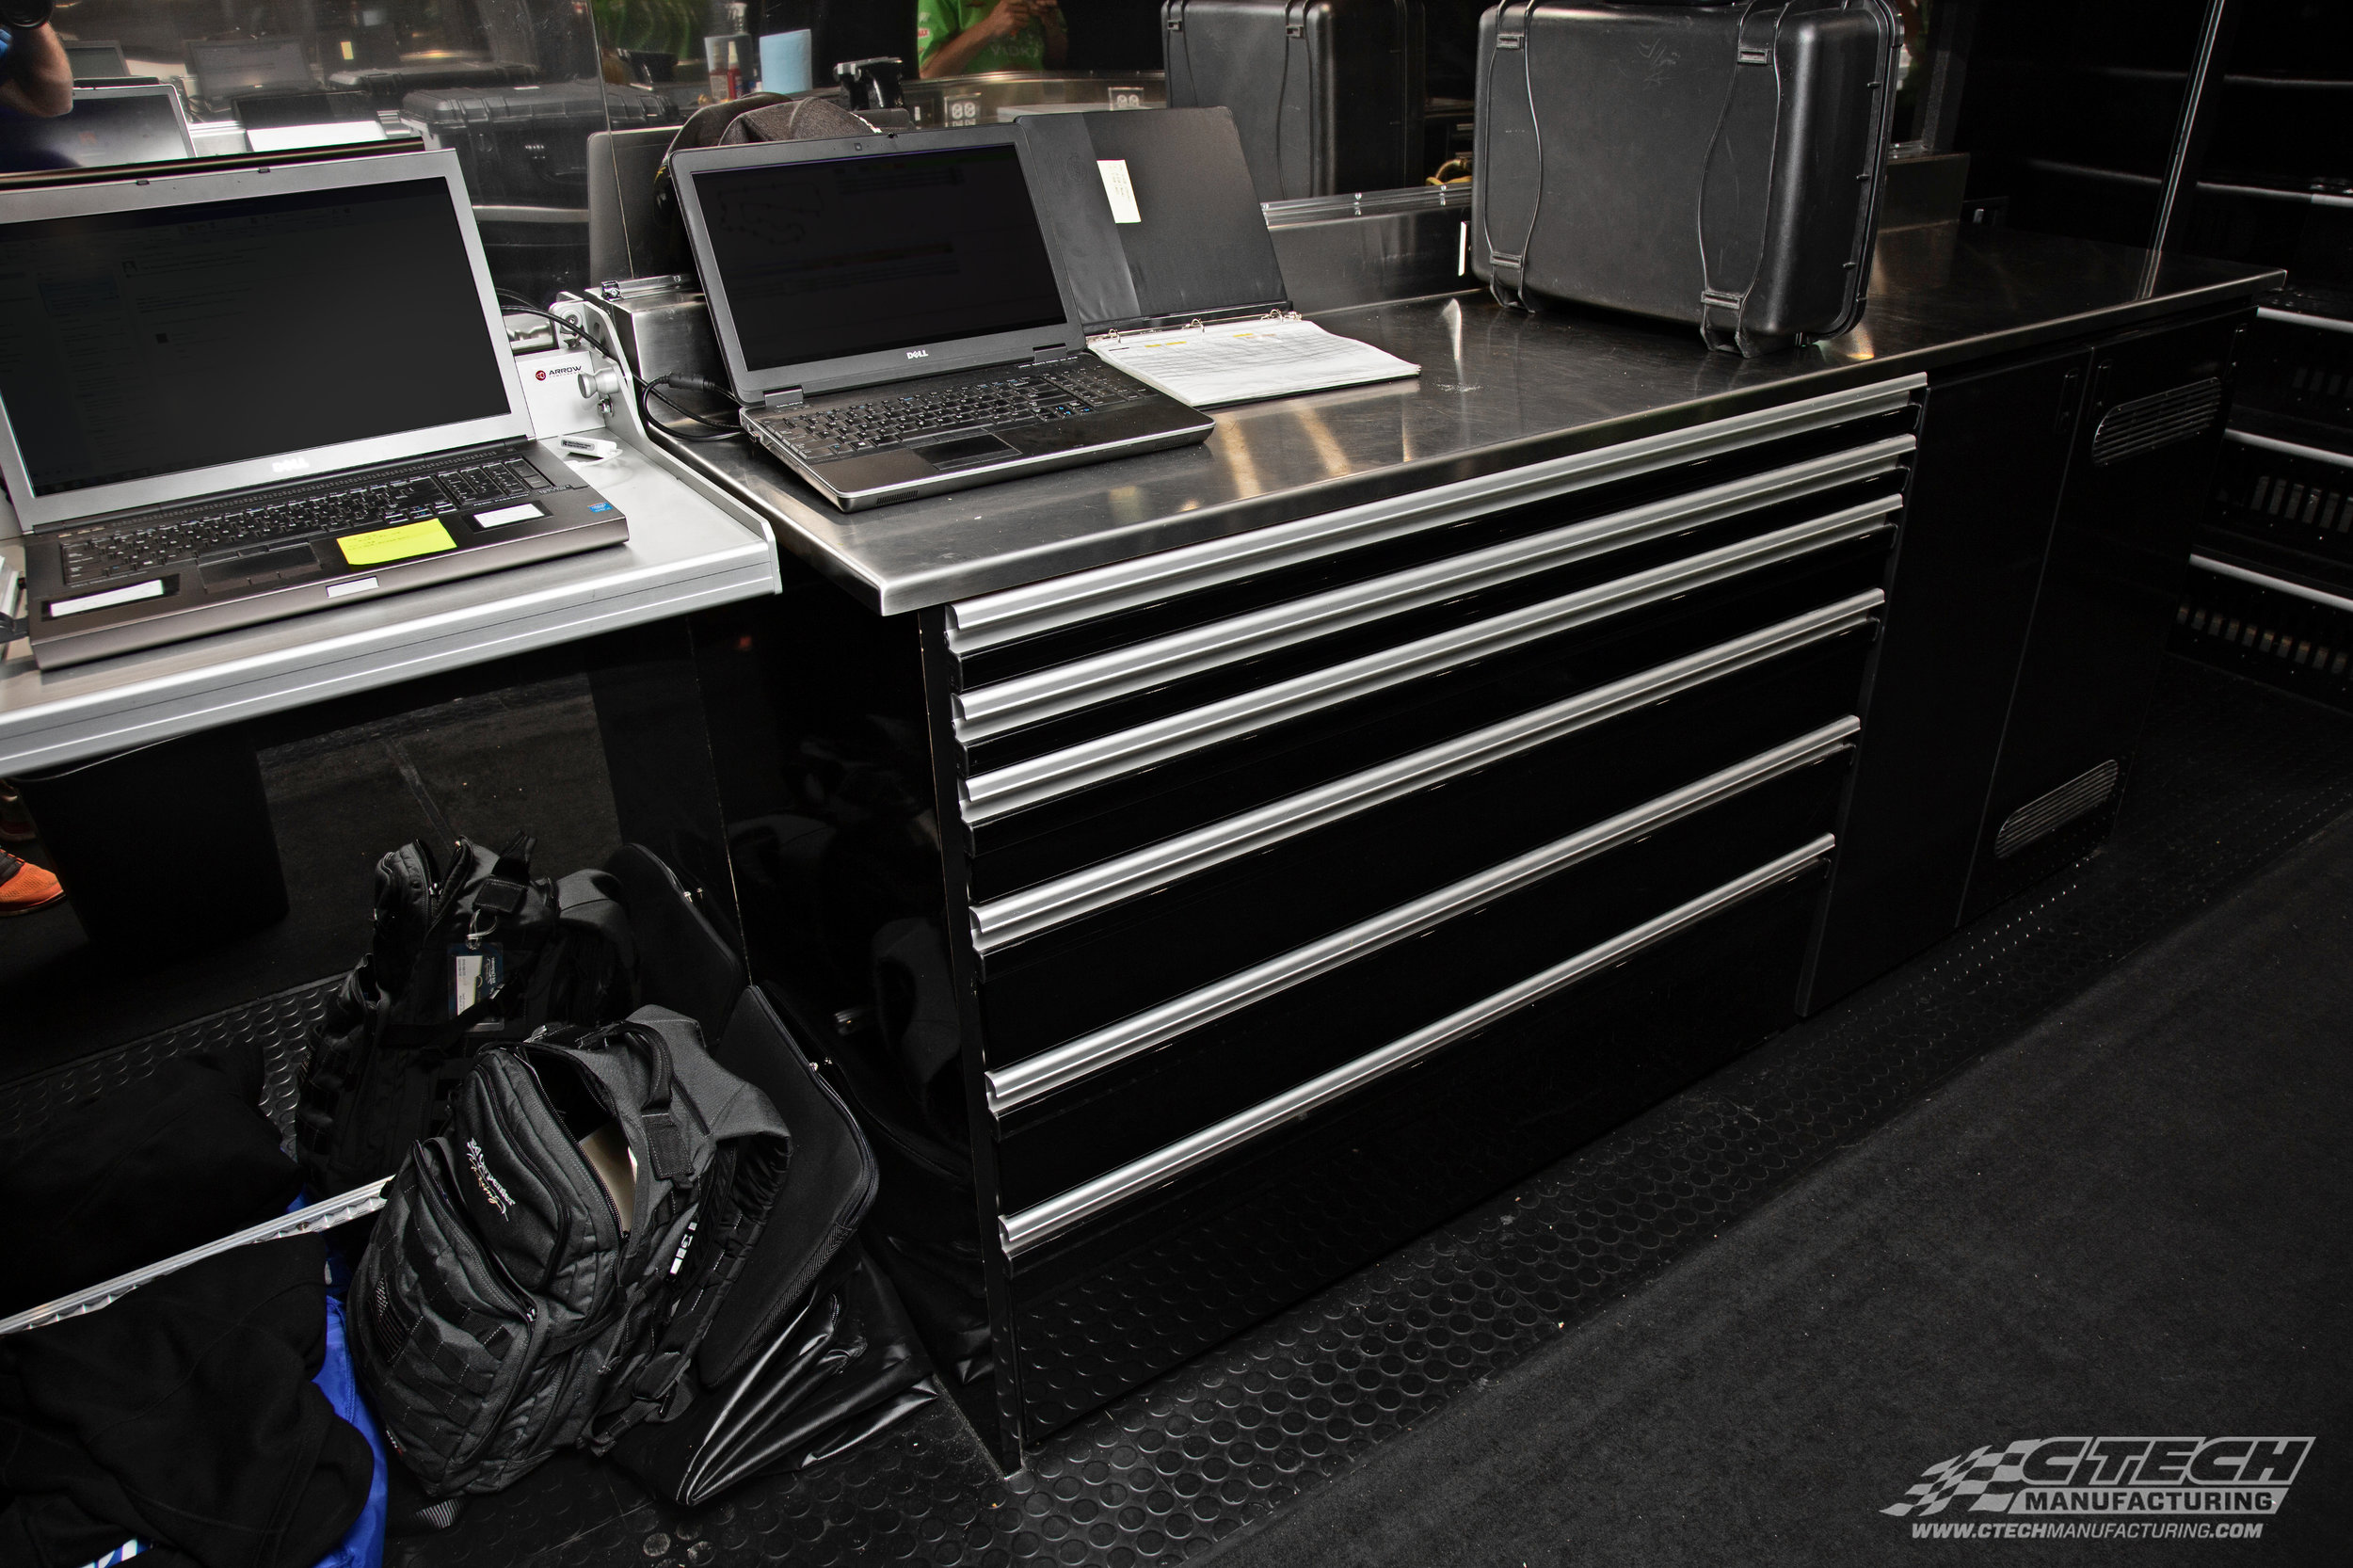 The team at Carpenter Racing get the most out of their transporter on the road and in the pits. With everything stowed and secure, they can use the countertops as a workspace instead of extra storage!